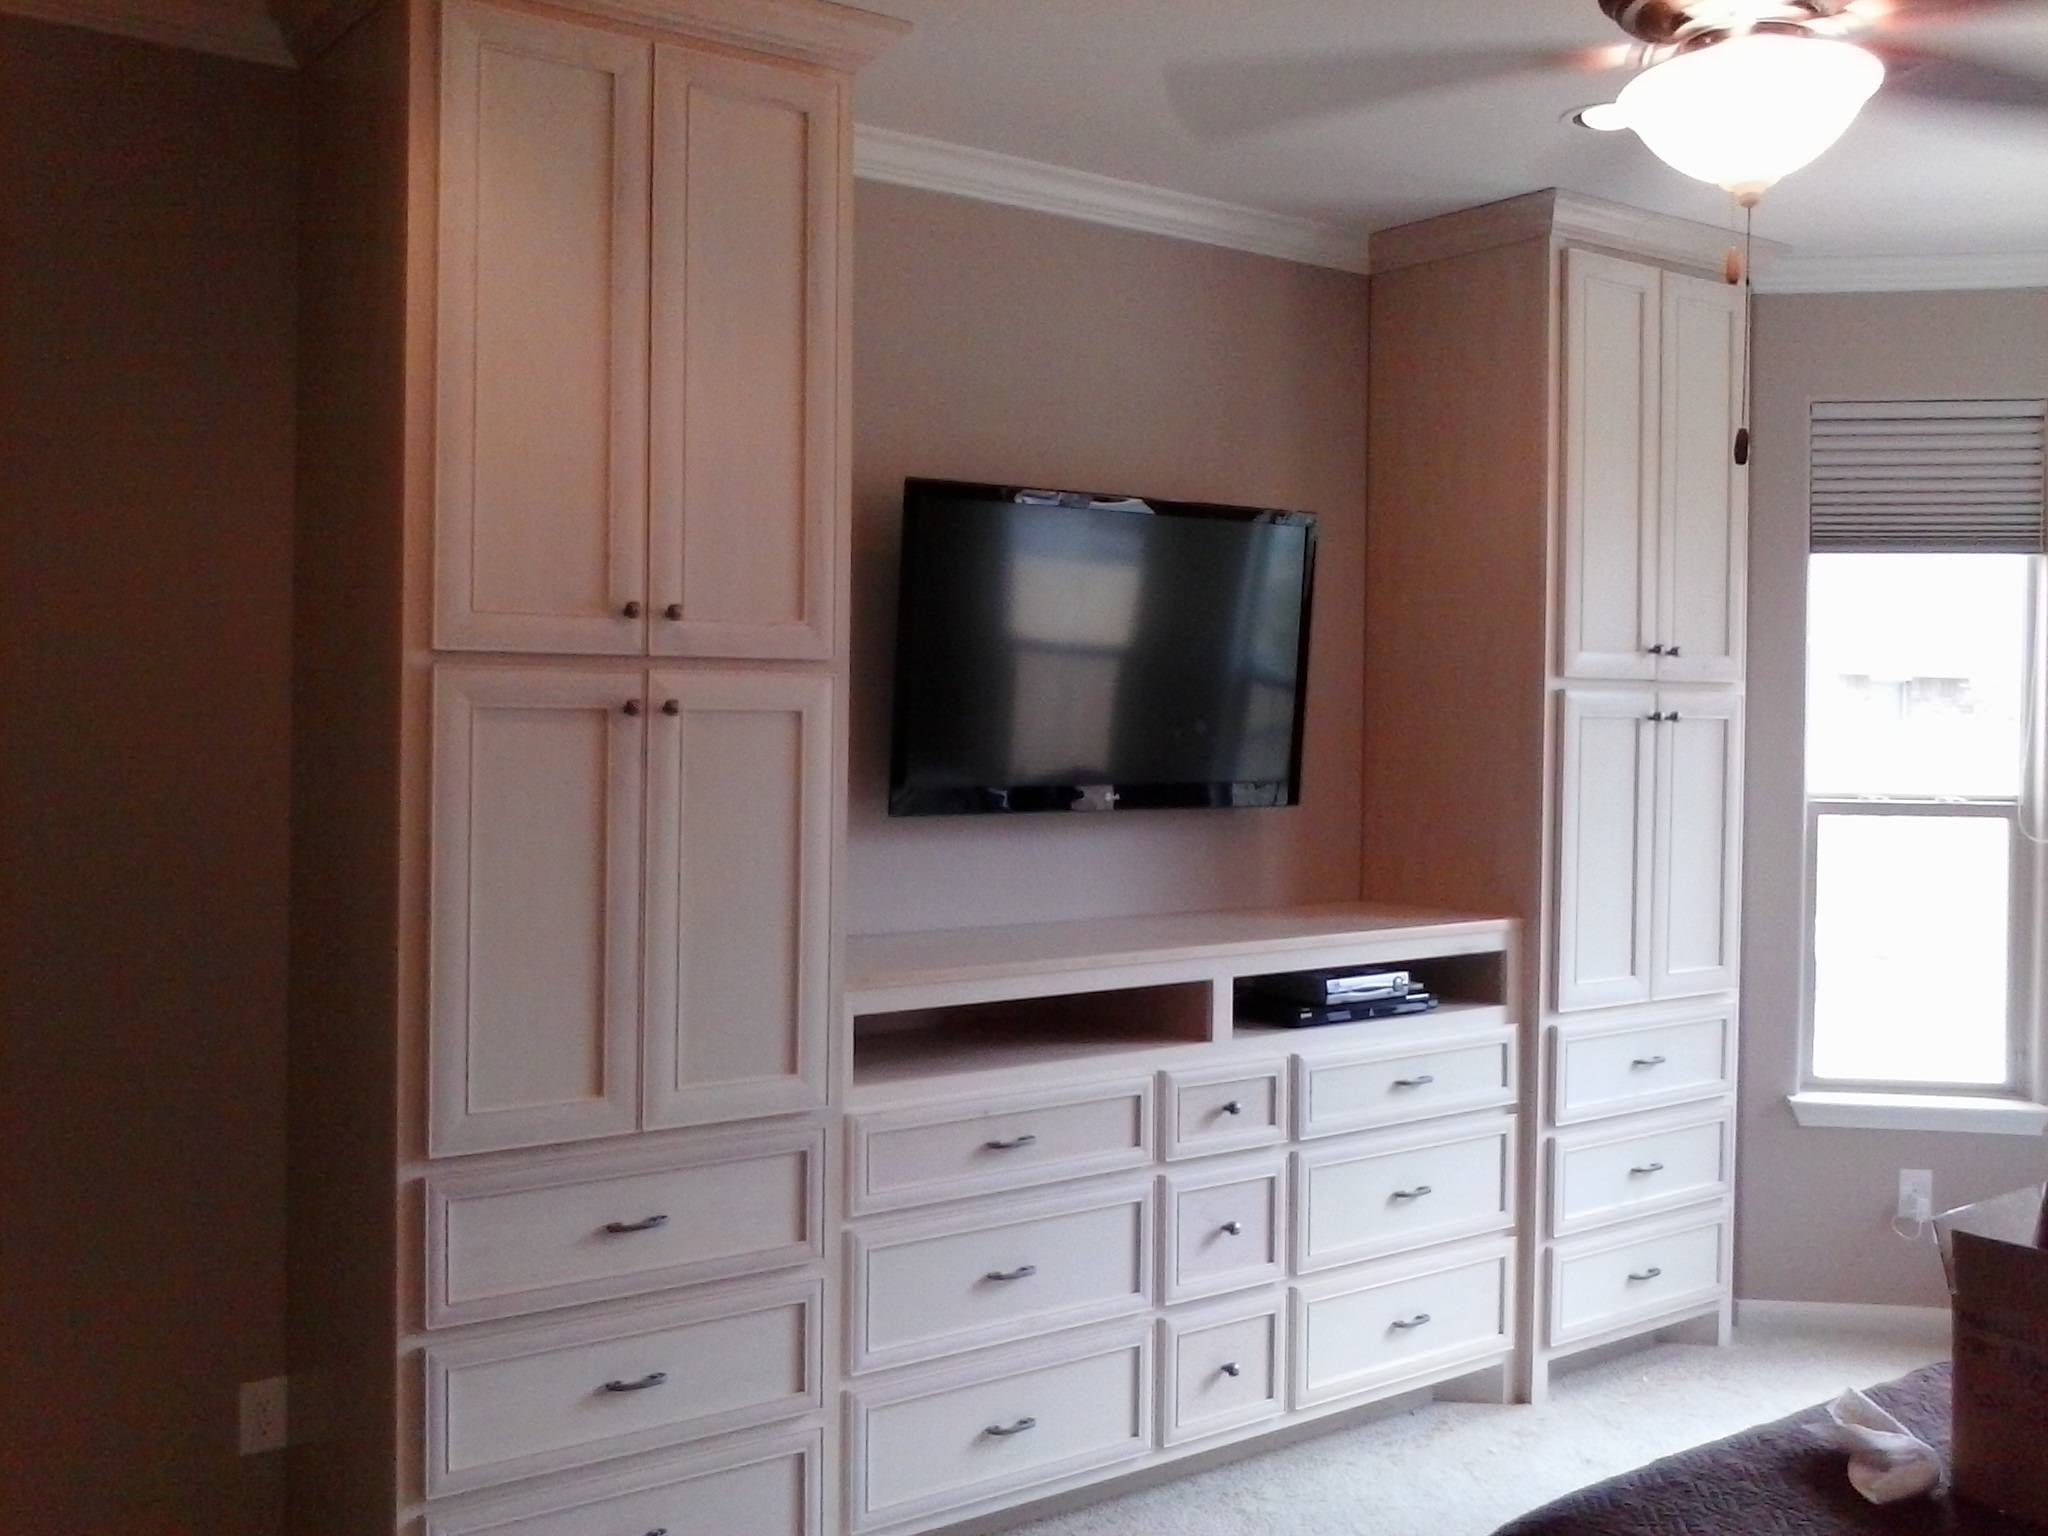 Image of Bedroom Wall Units with Drawers and TVWardrobe